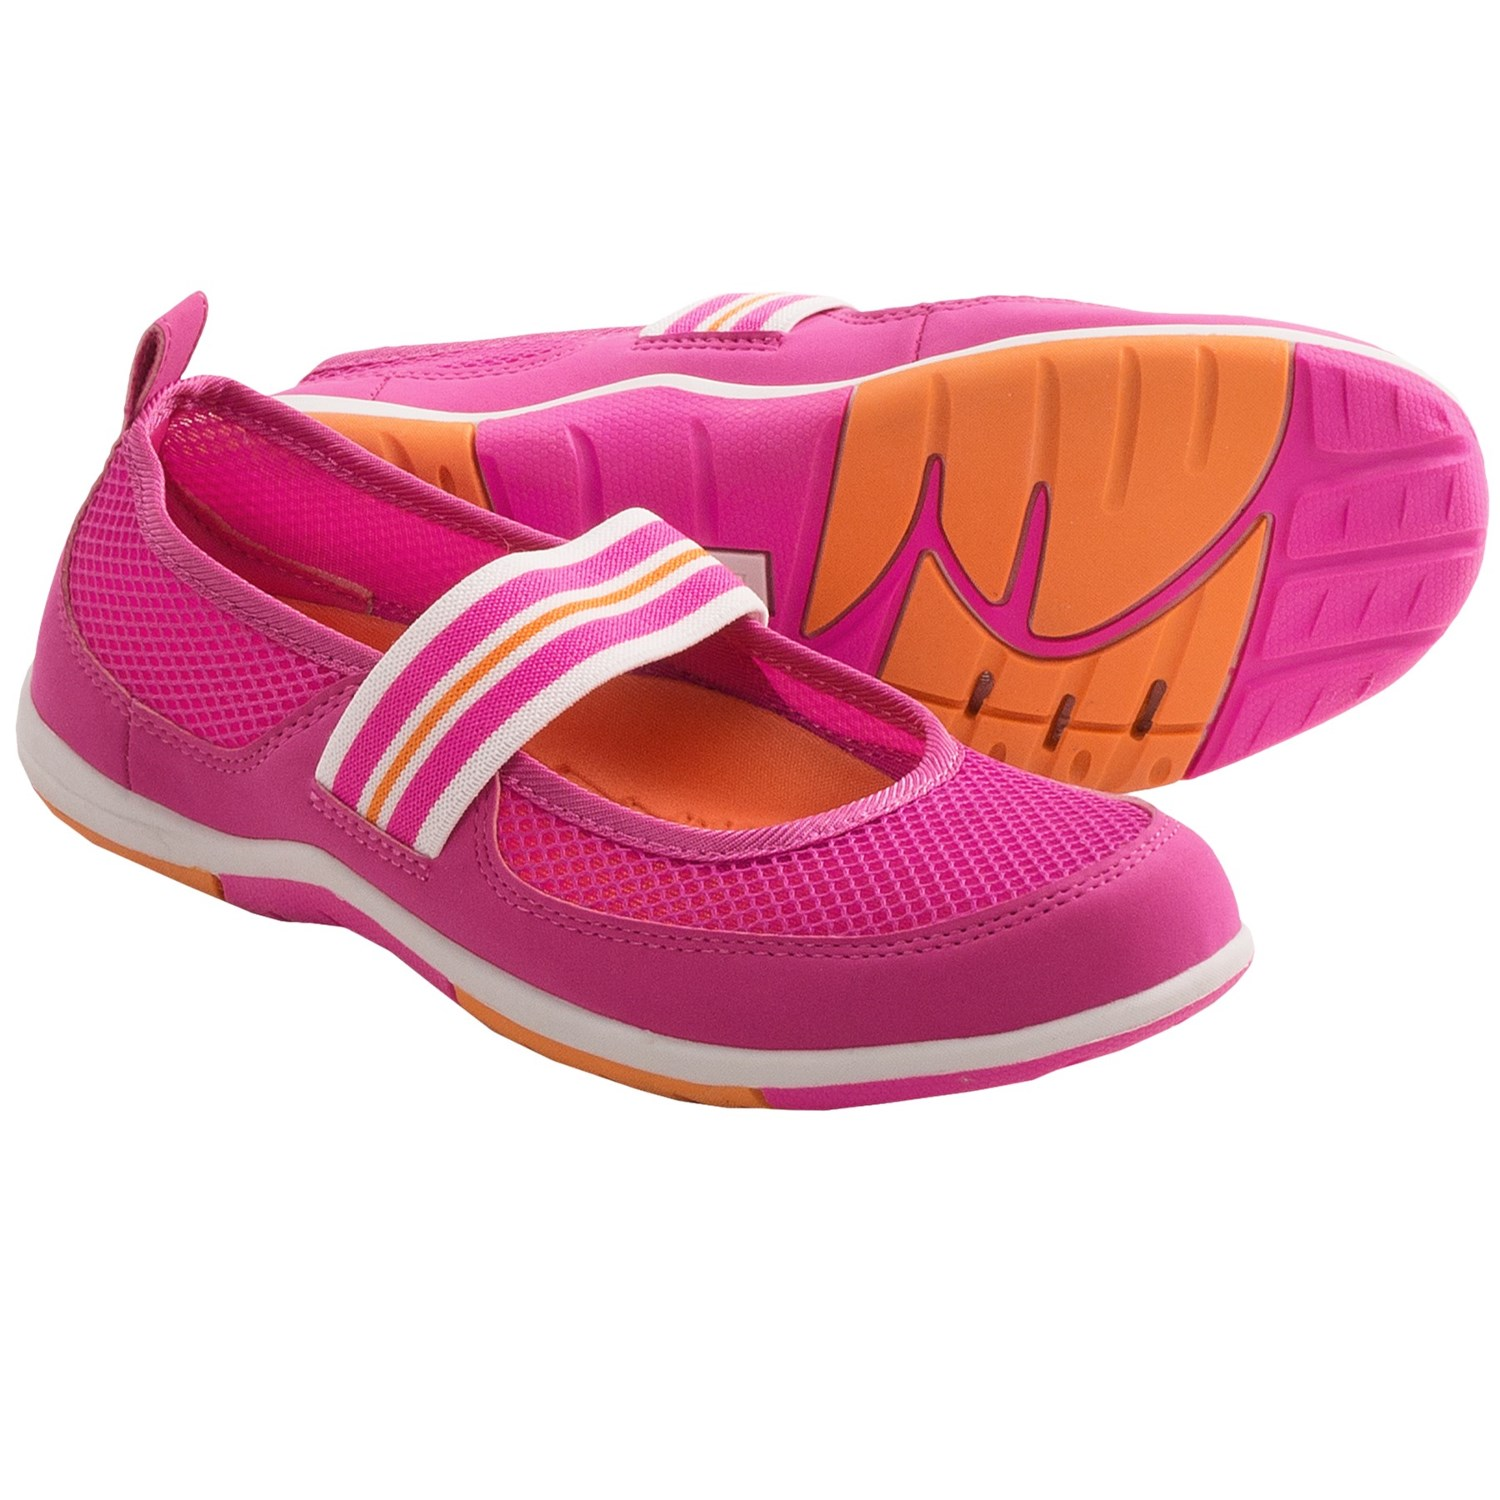 Lands End Womens Water Shoes